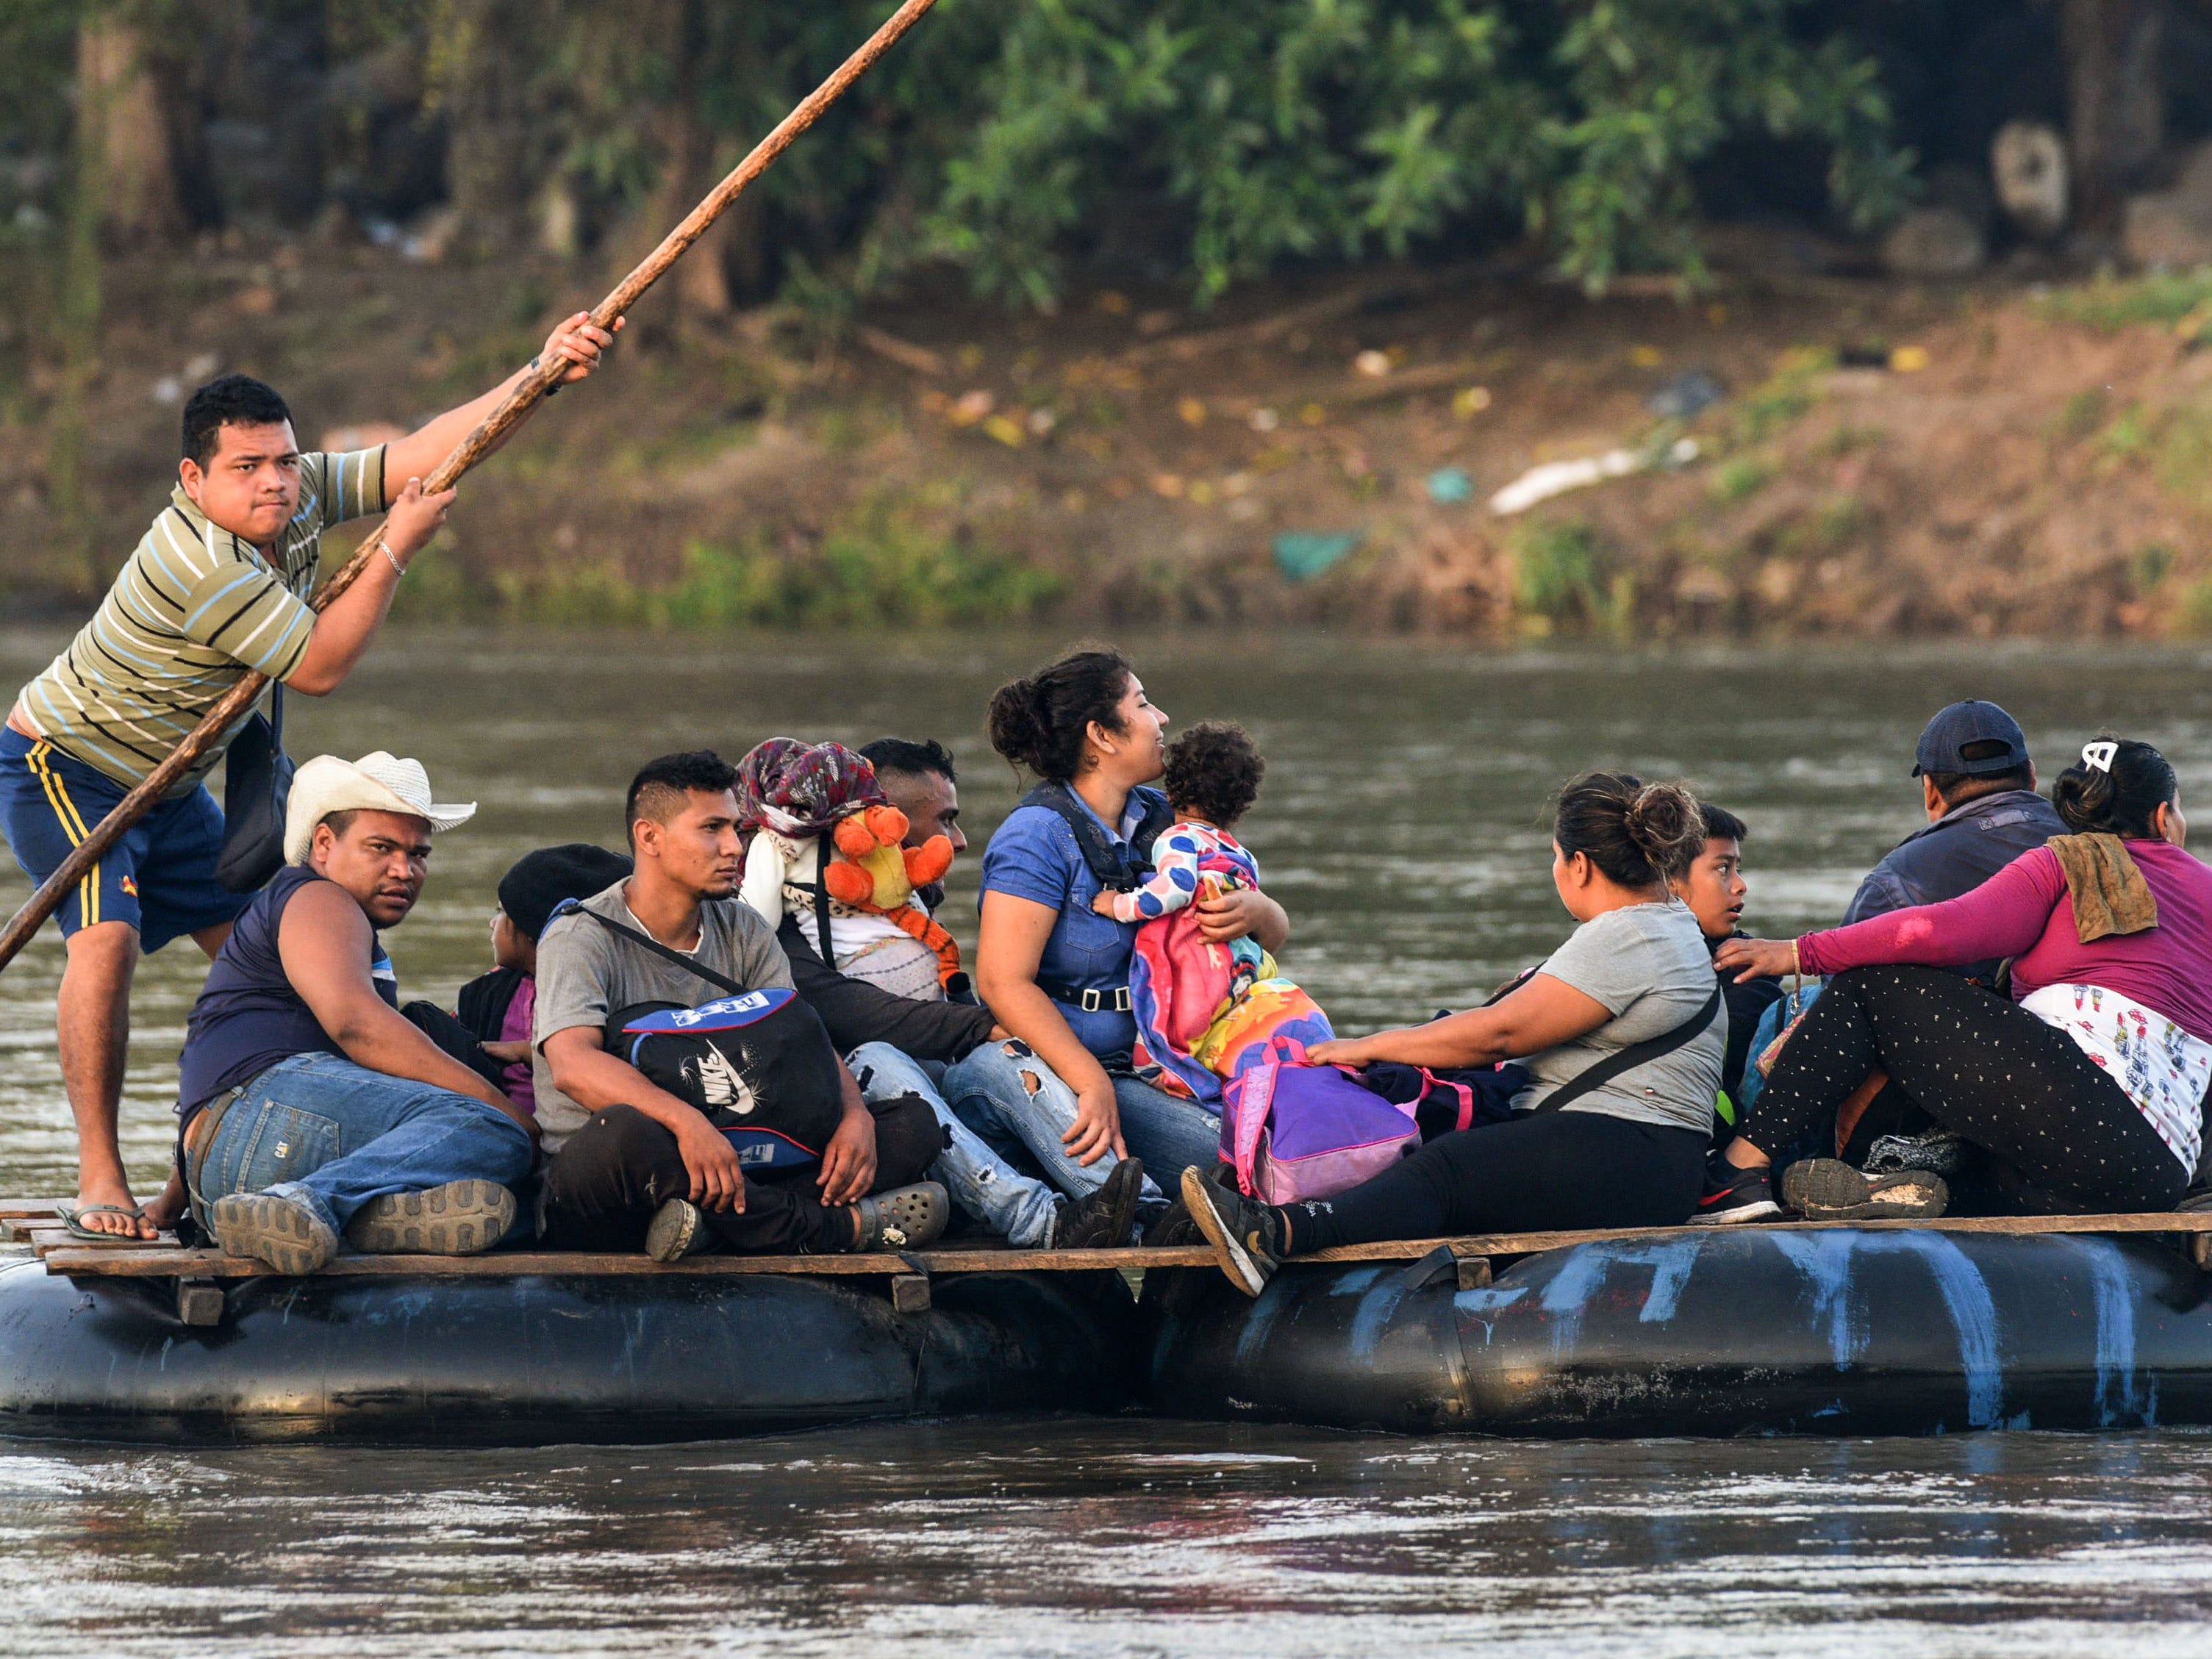 Honduran migrants taking part in a caravan heading to the US, cross the Suchiate River, the natural border between Guatemala and Mexico, in makeshift rafts, in Ciudad Tecun Uman, Guatemala, Oct. 21, 2018.